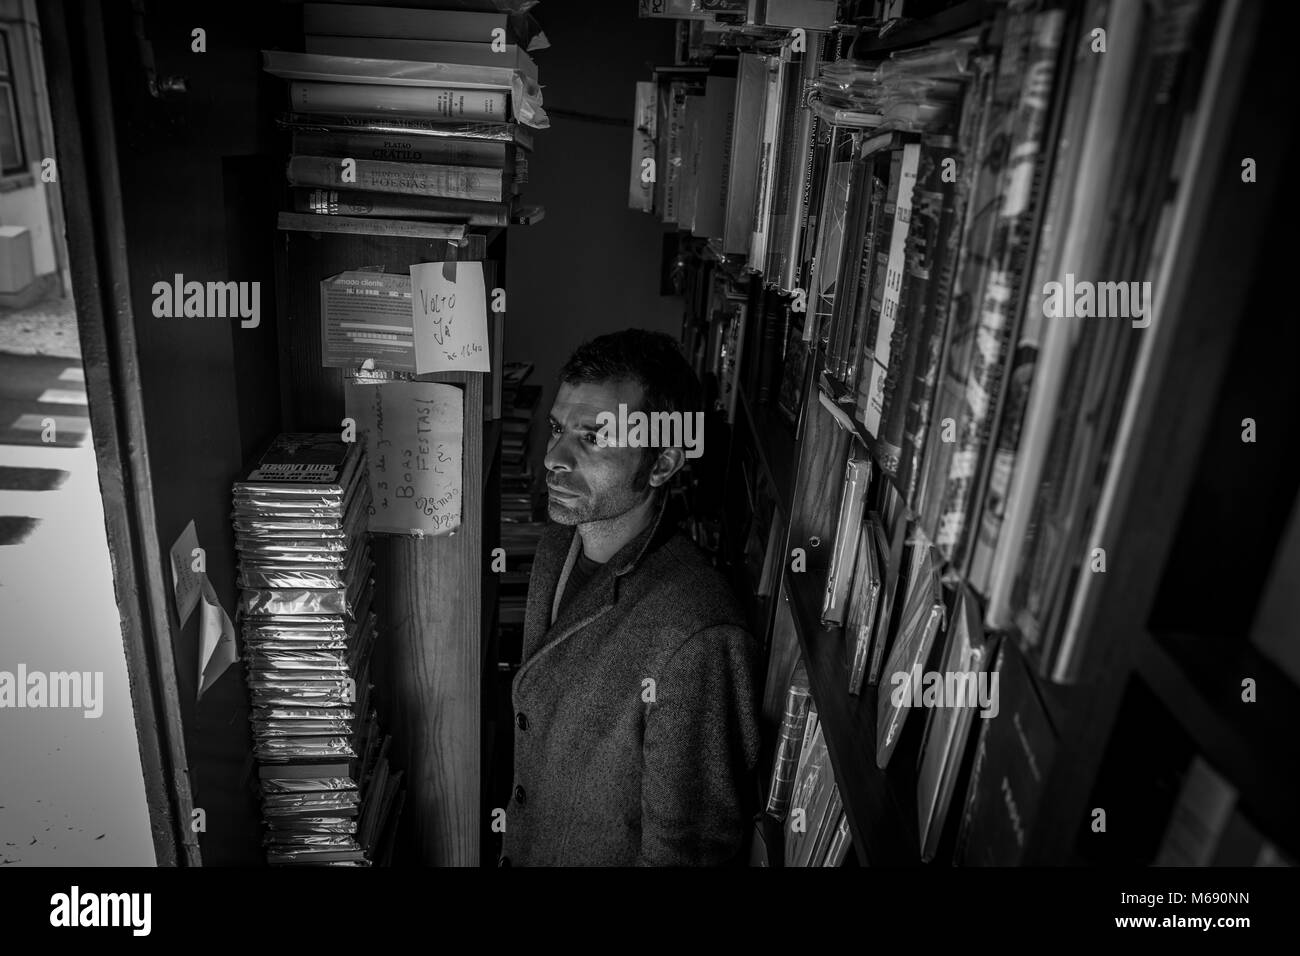 Simao Carneiro, owner of what is possibly the smallest bookshop in the world, in Lisbon, Portugal. - Stock Image